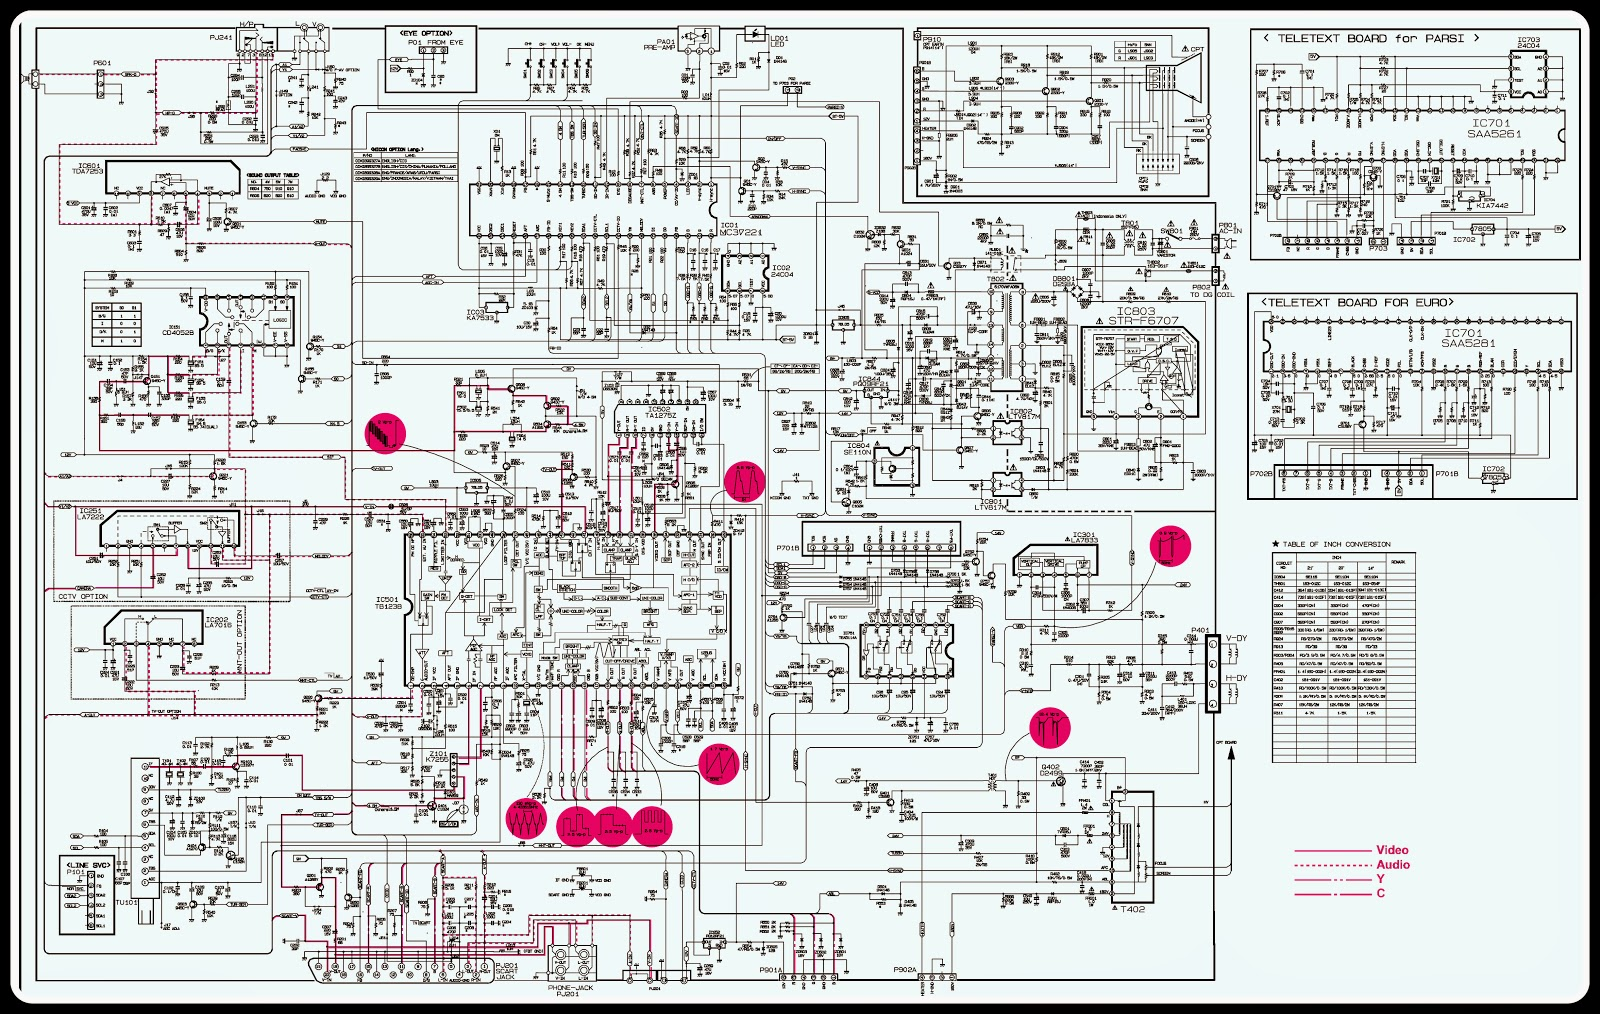 led tv circuit diagram pdf wiring diagram log led tv diagram pdf wiring diagram forward led [ 1600 x 1014 Pixel ]